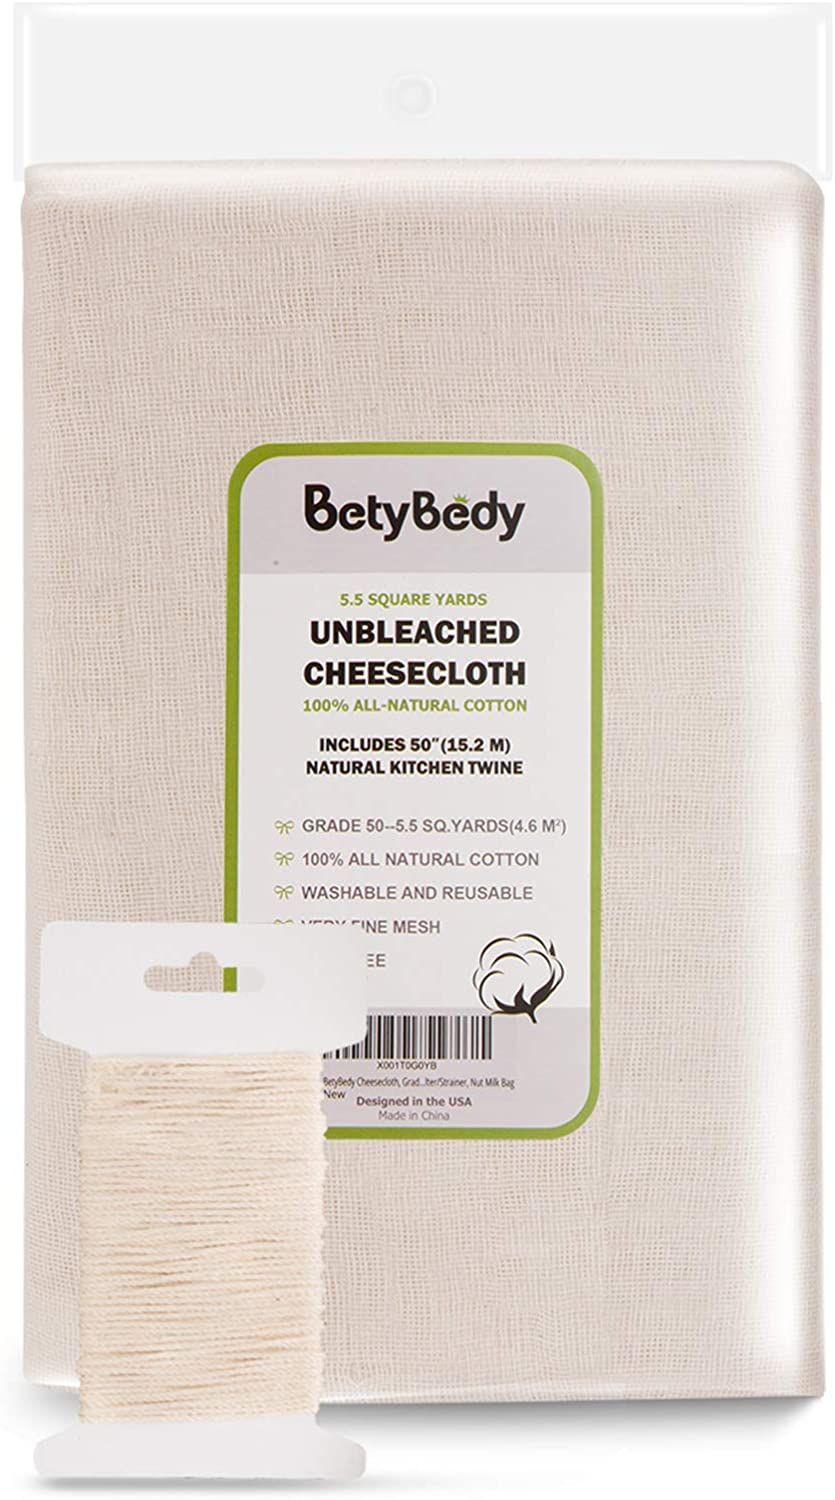 BetyBedy Cheesecloth, Grade 50 (5.5 Yards/49.5 Sq. Feet) Unbleached Cotton Fabric with 50 Feet Cooking Twine, Washable and Reusable Strainer for Cheesemaking, Food Filter/Strainer, Nut Milk Bag